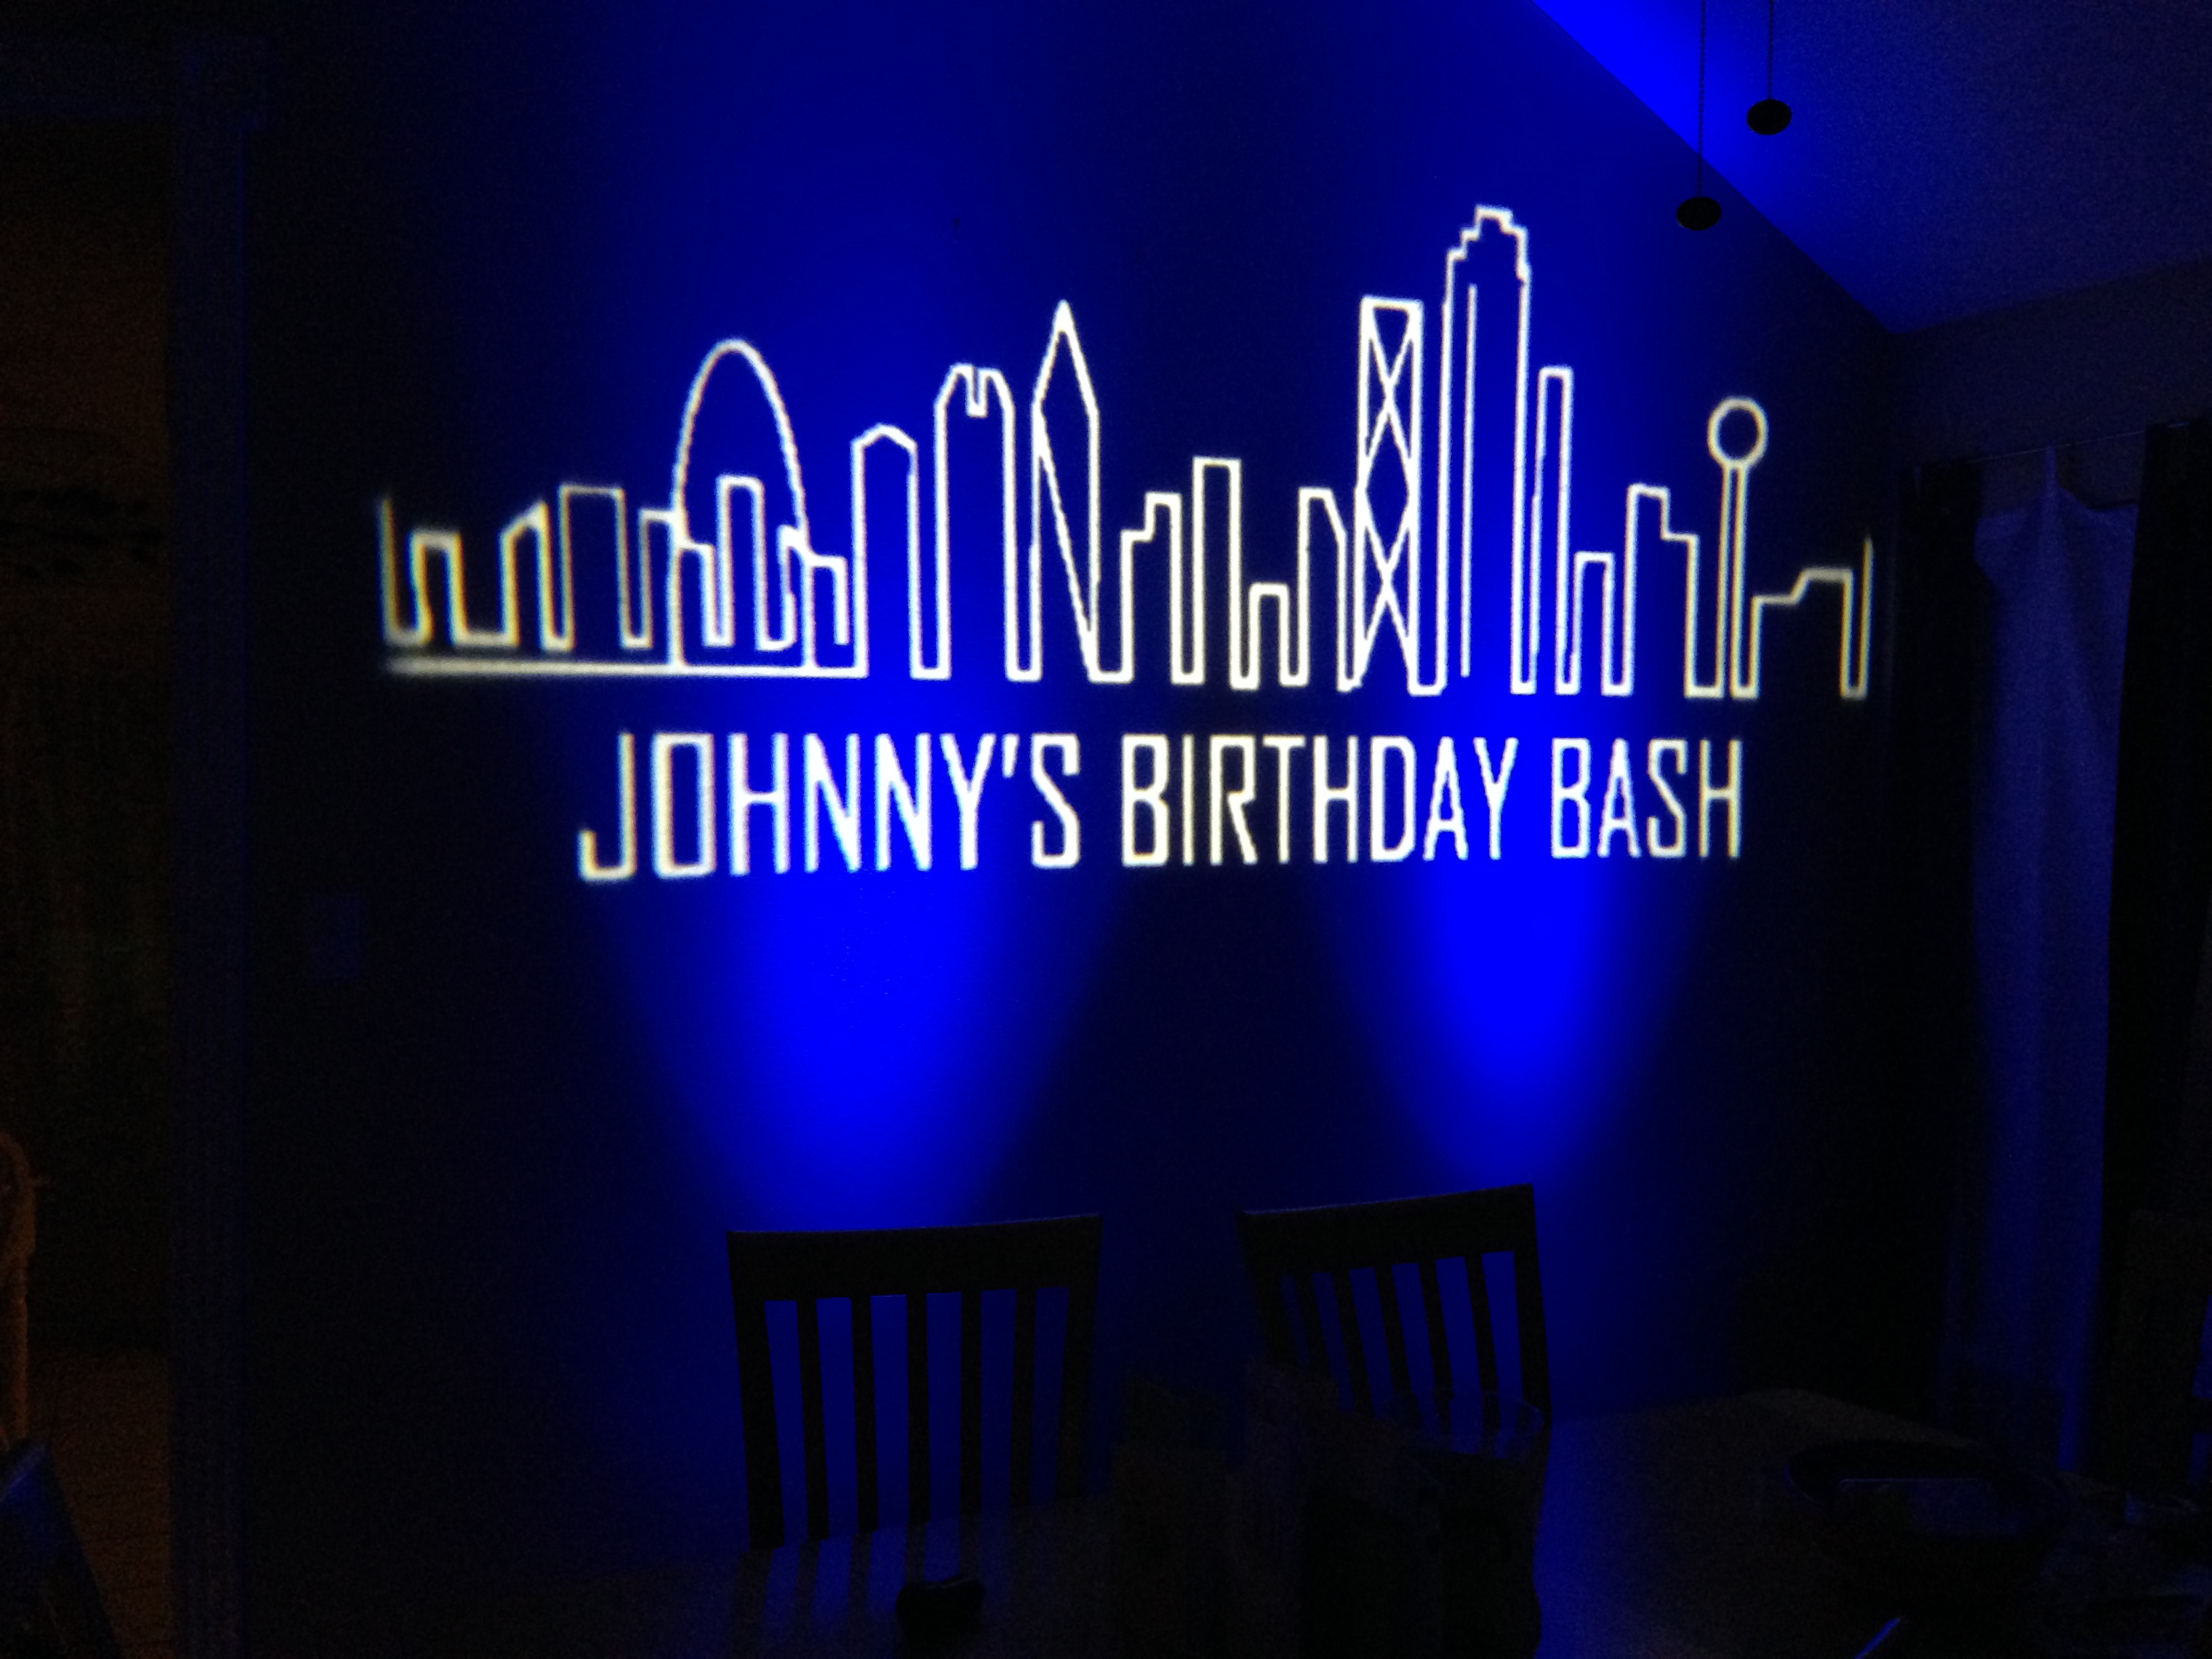 JOHNNY'S B-DAY BASH